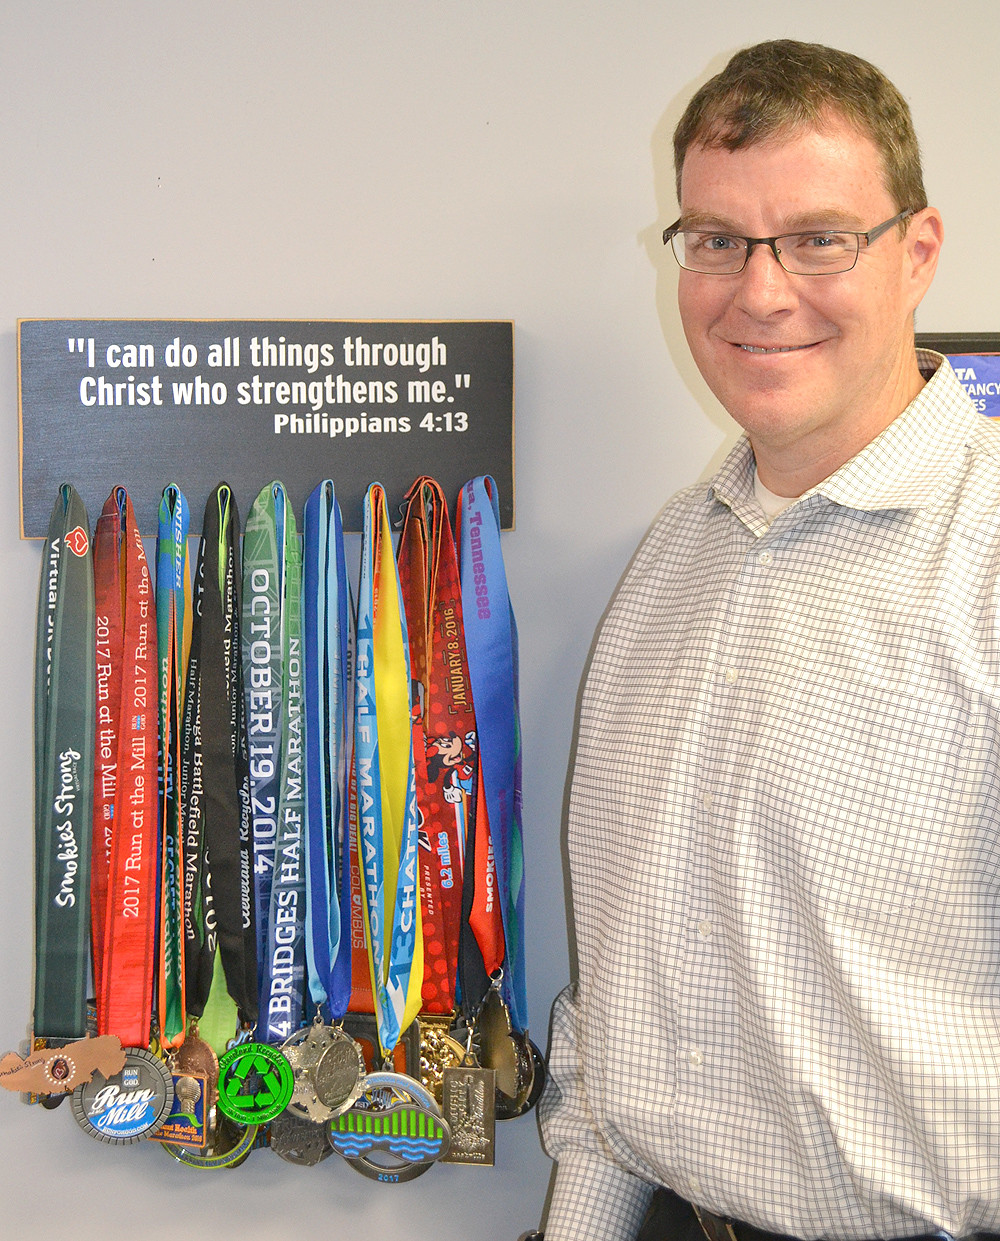 MATT RYERSON, president and CEO of United Way of the Ocoee Region, is also a dedicated runner, earning medals from around 35 races in which he has participated.